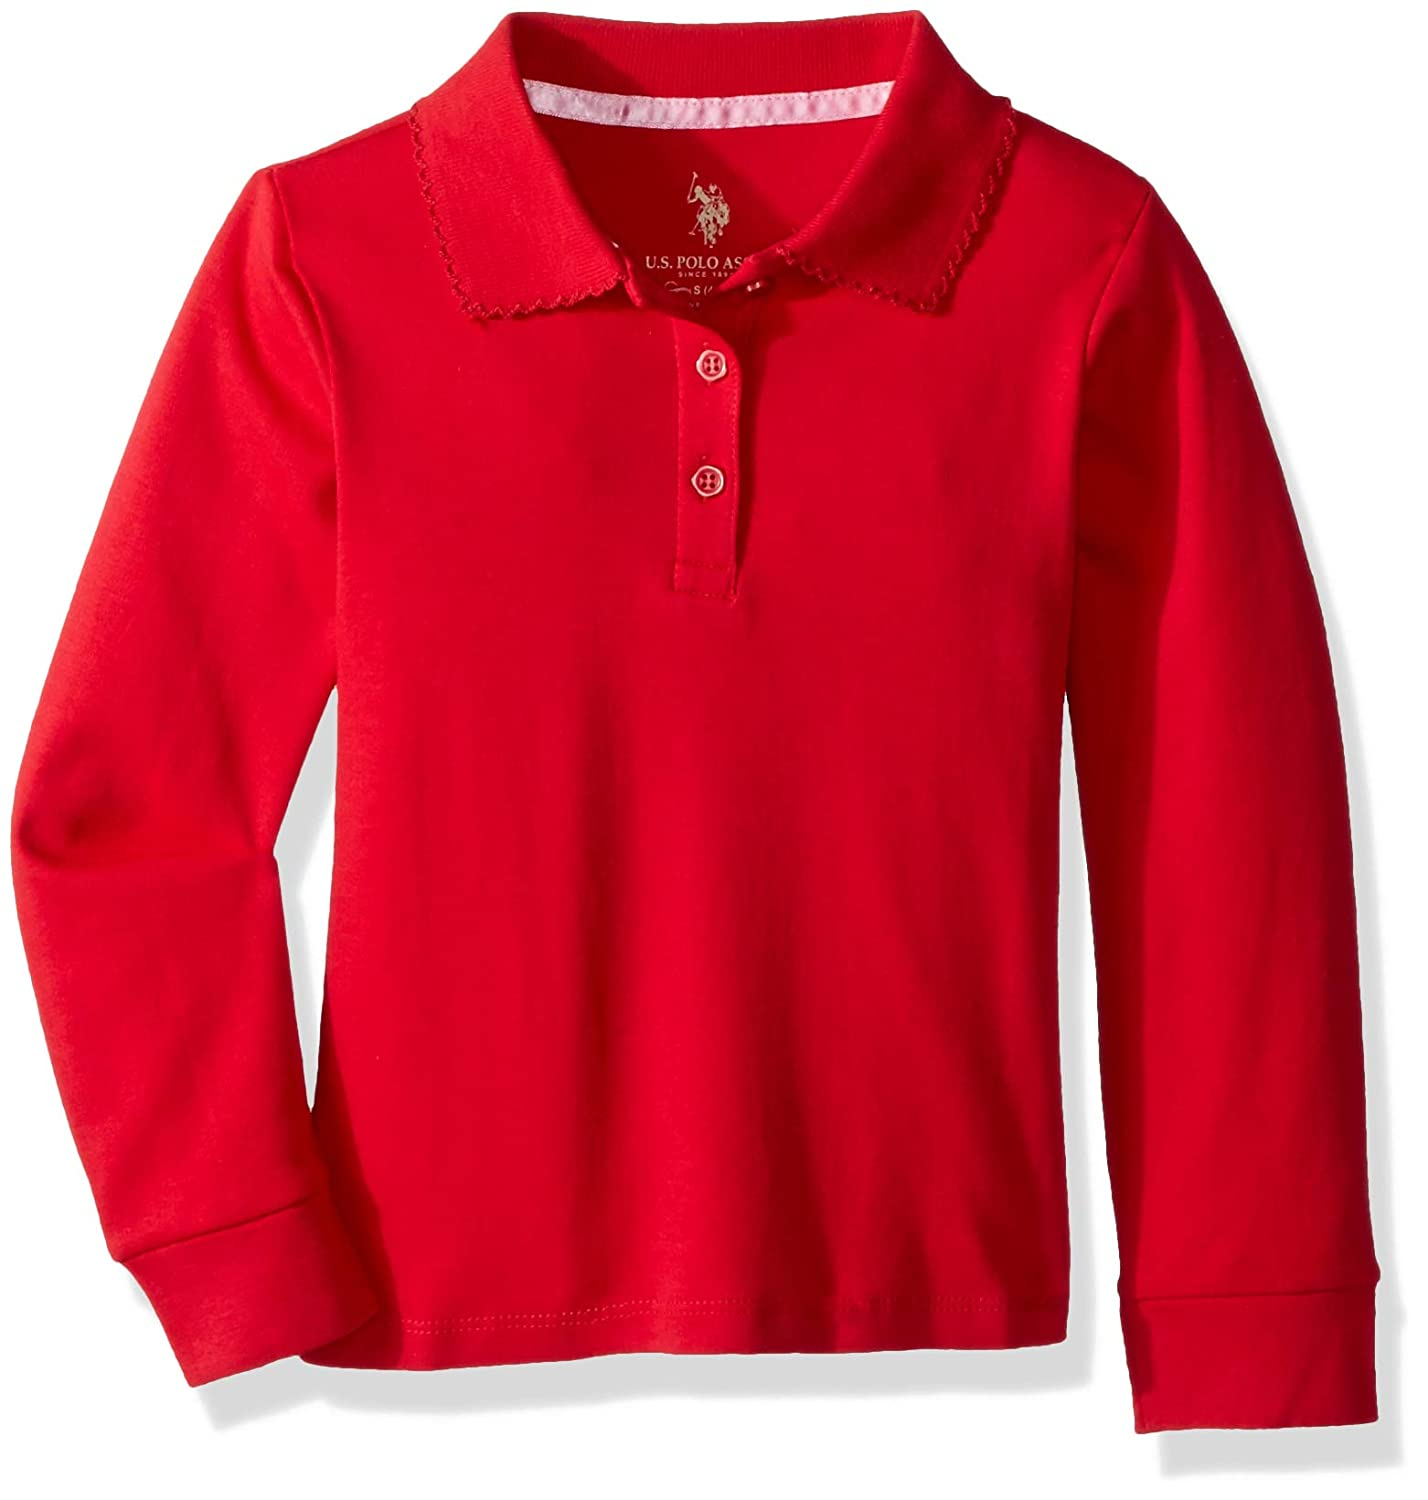 U.S. Polo Assn. Girls' Long Sleeve Polo Shirt Picot Trim 7519